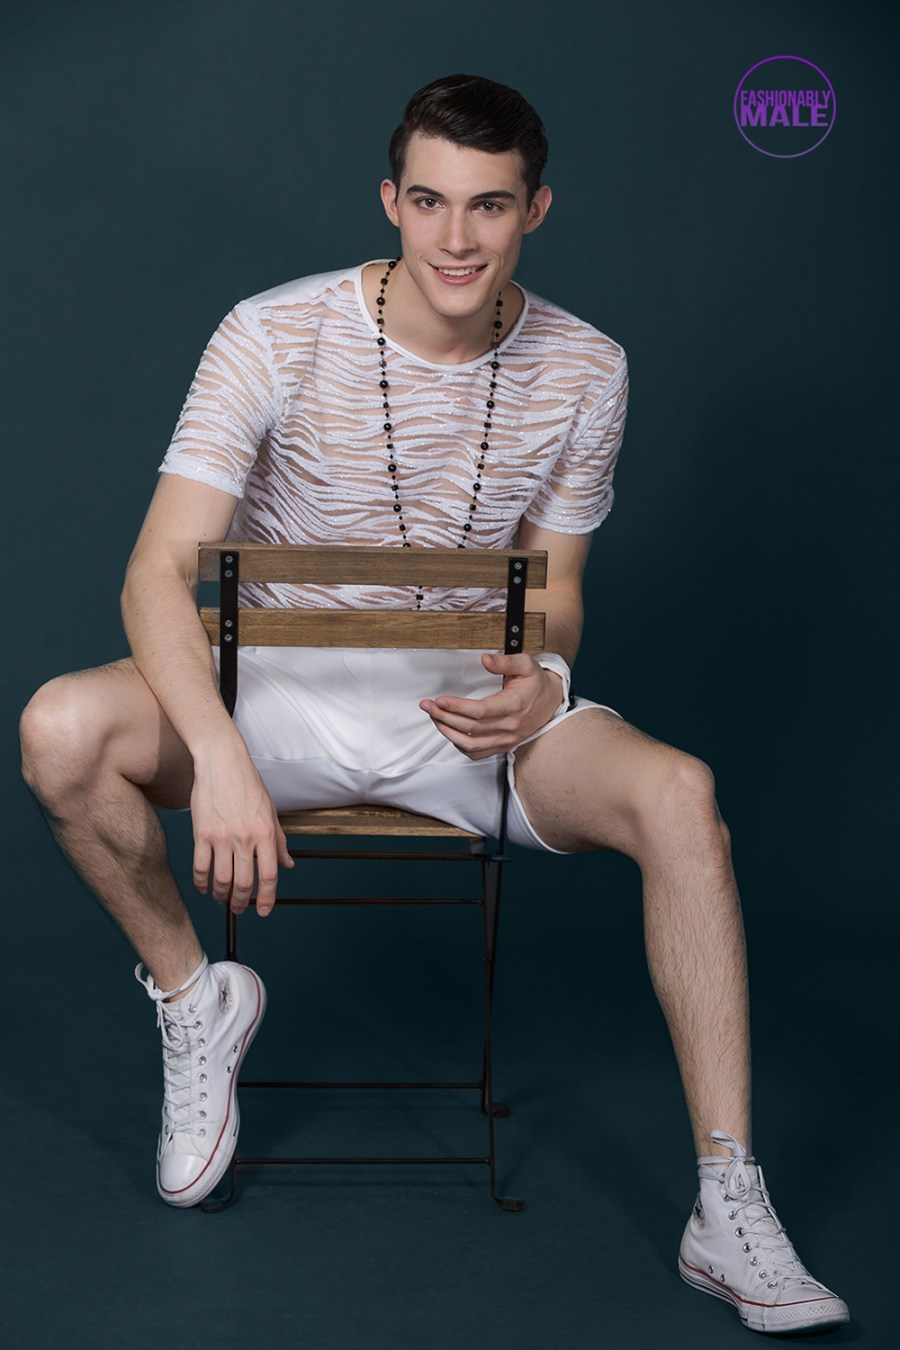 Ivan Geringer is Back in Kuala Lumpur by Jason Oung